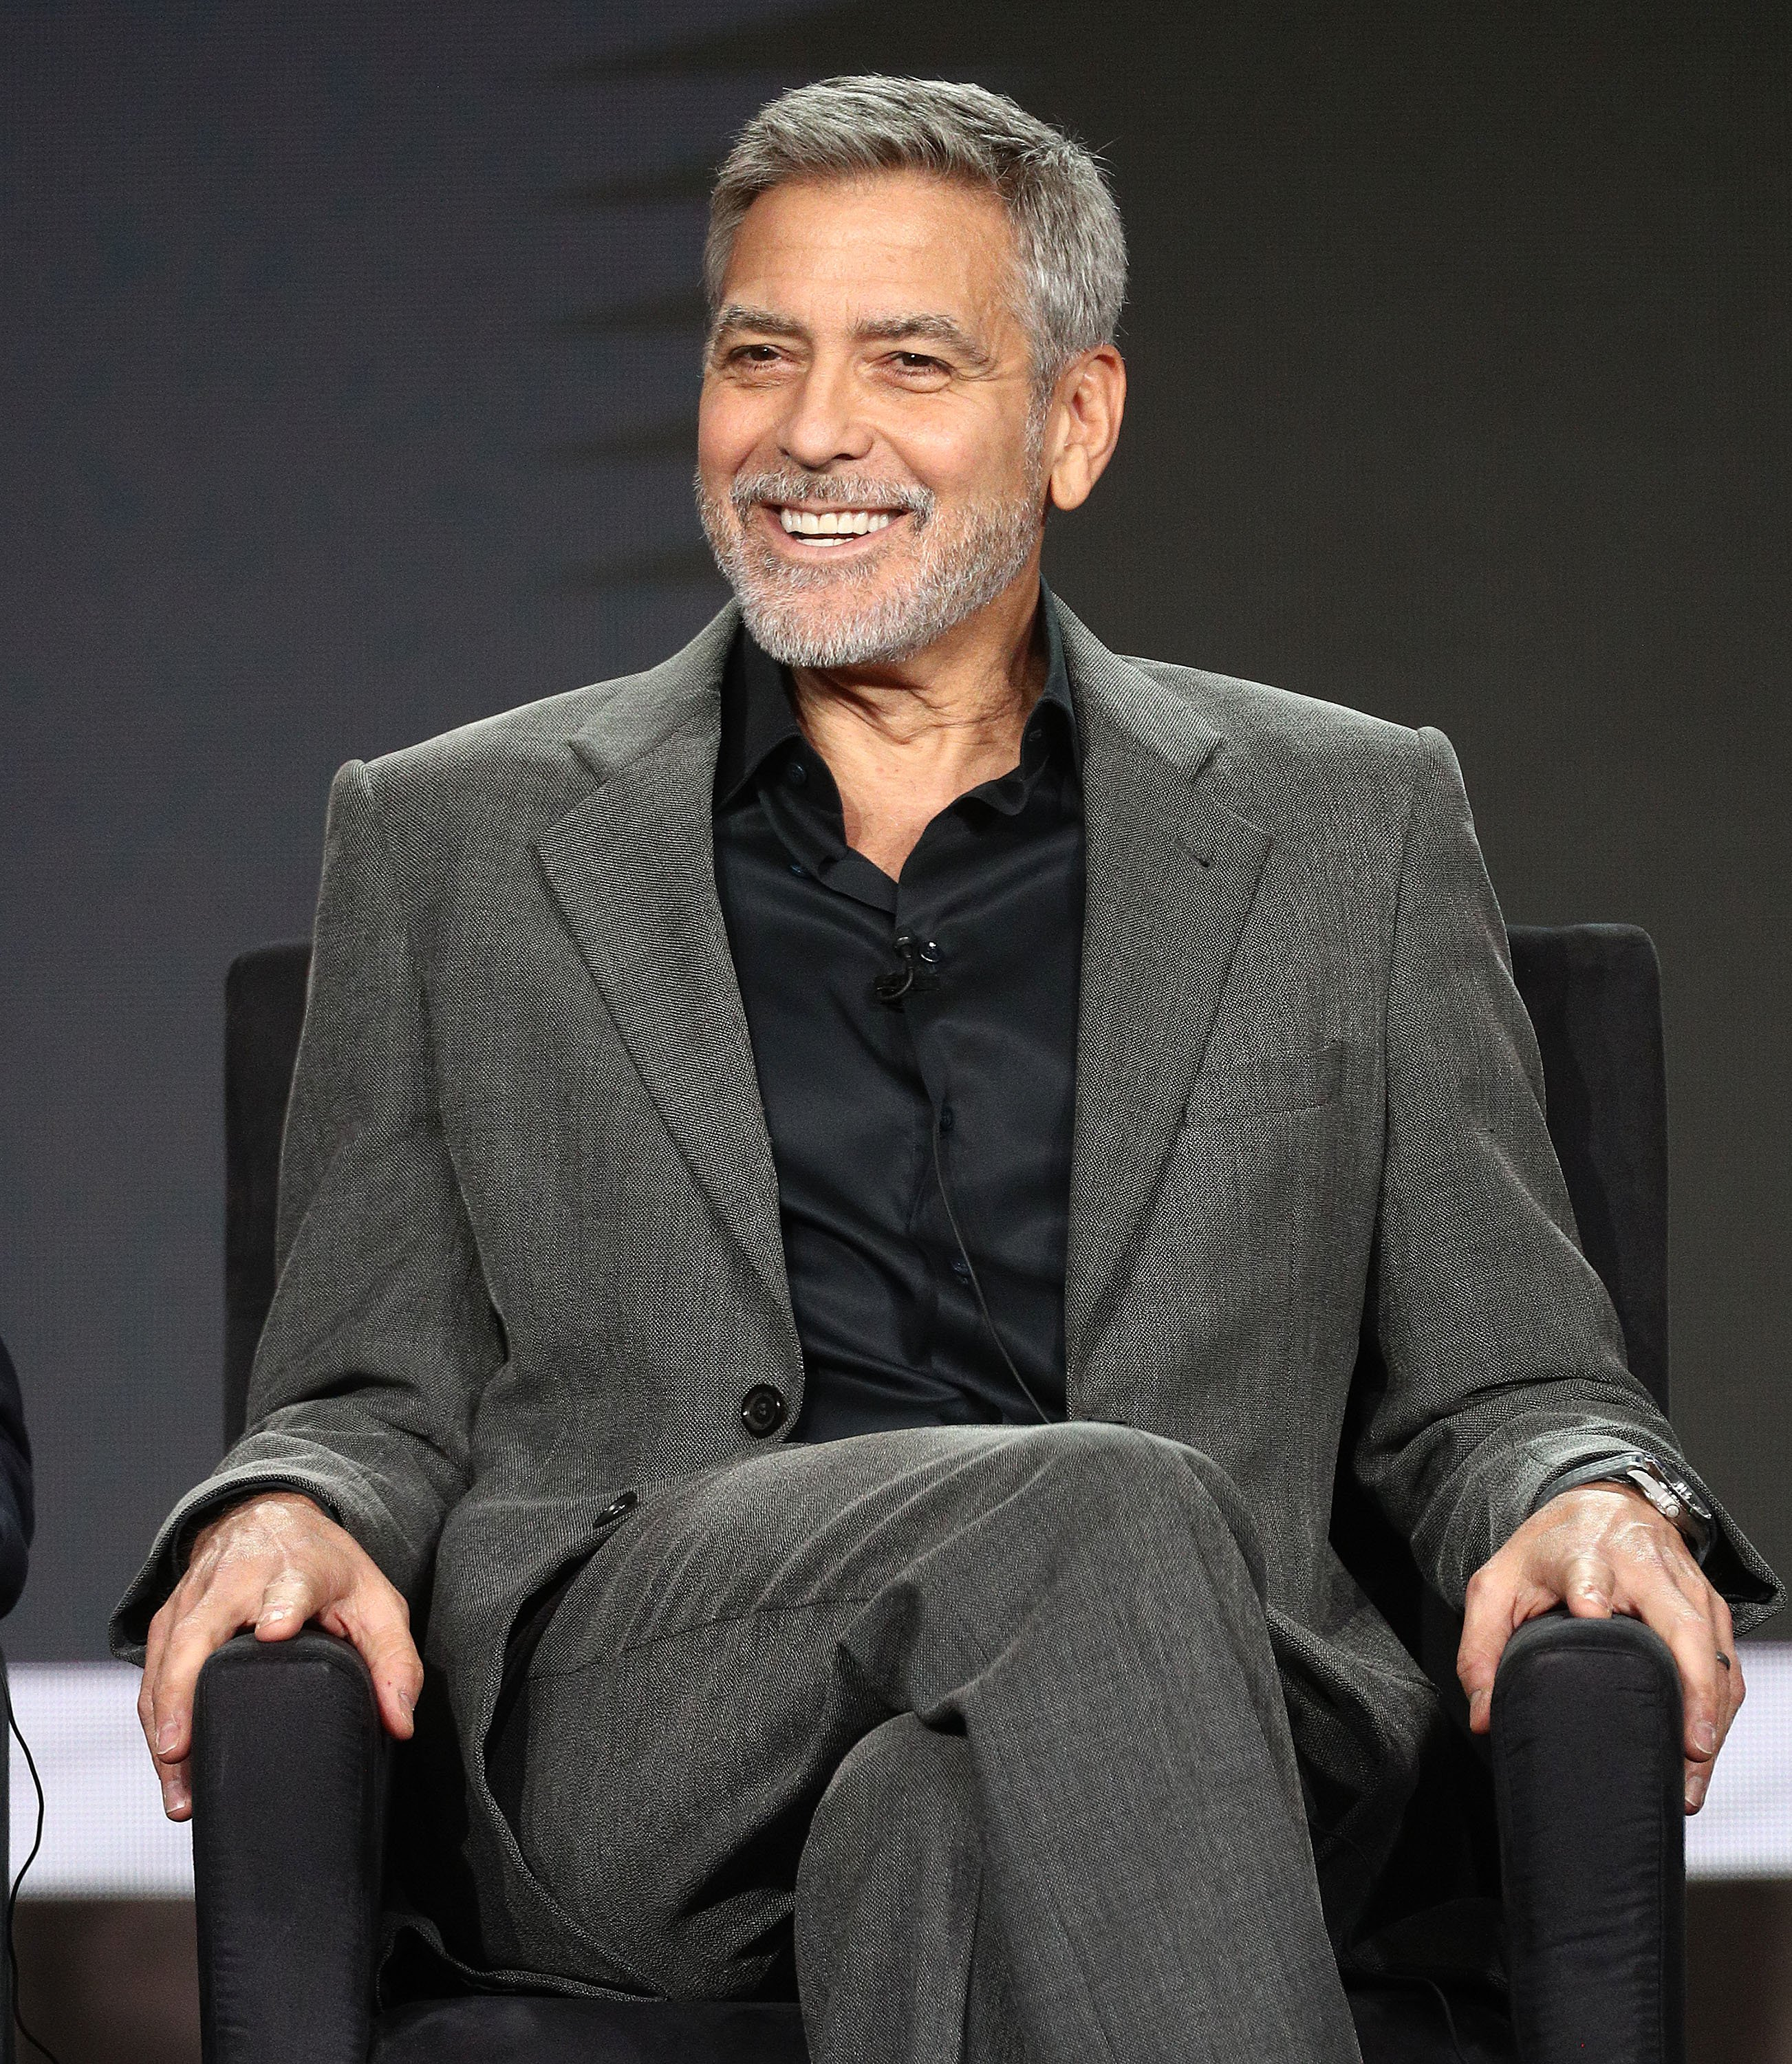 George Clooney attend the Winter Television Critics Association Press Tour on February 11, 2019, in Pasadena, California. | Source: Getty Images.